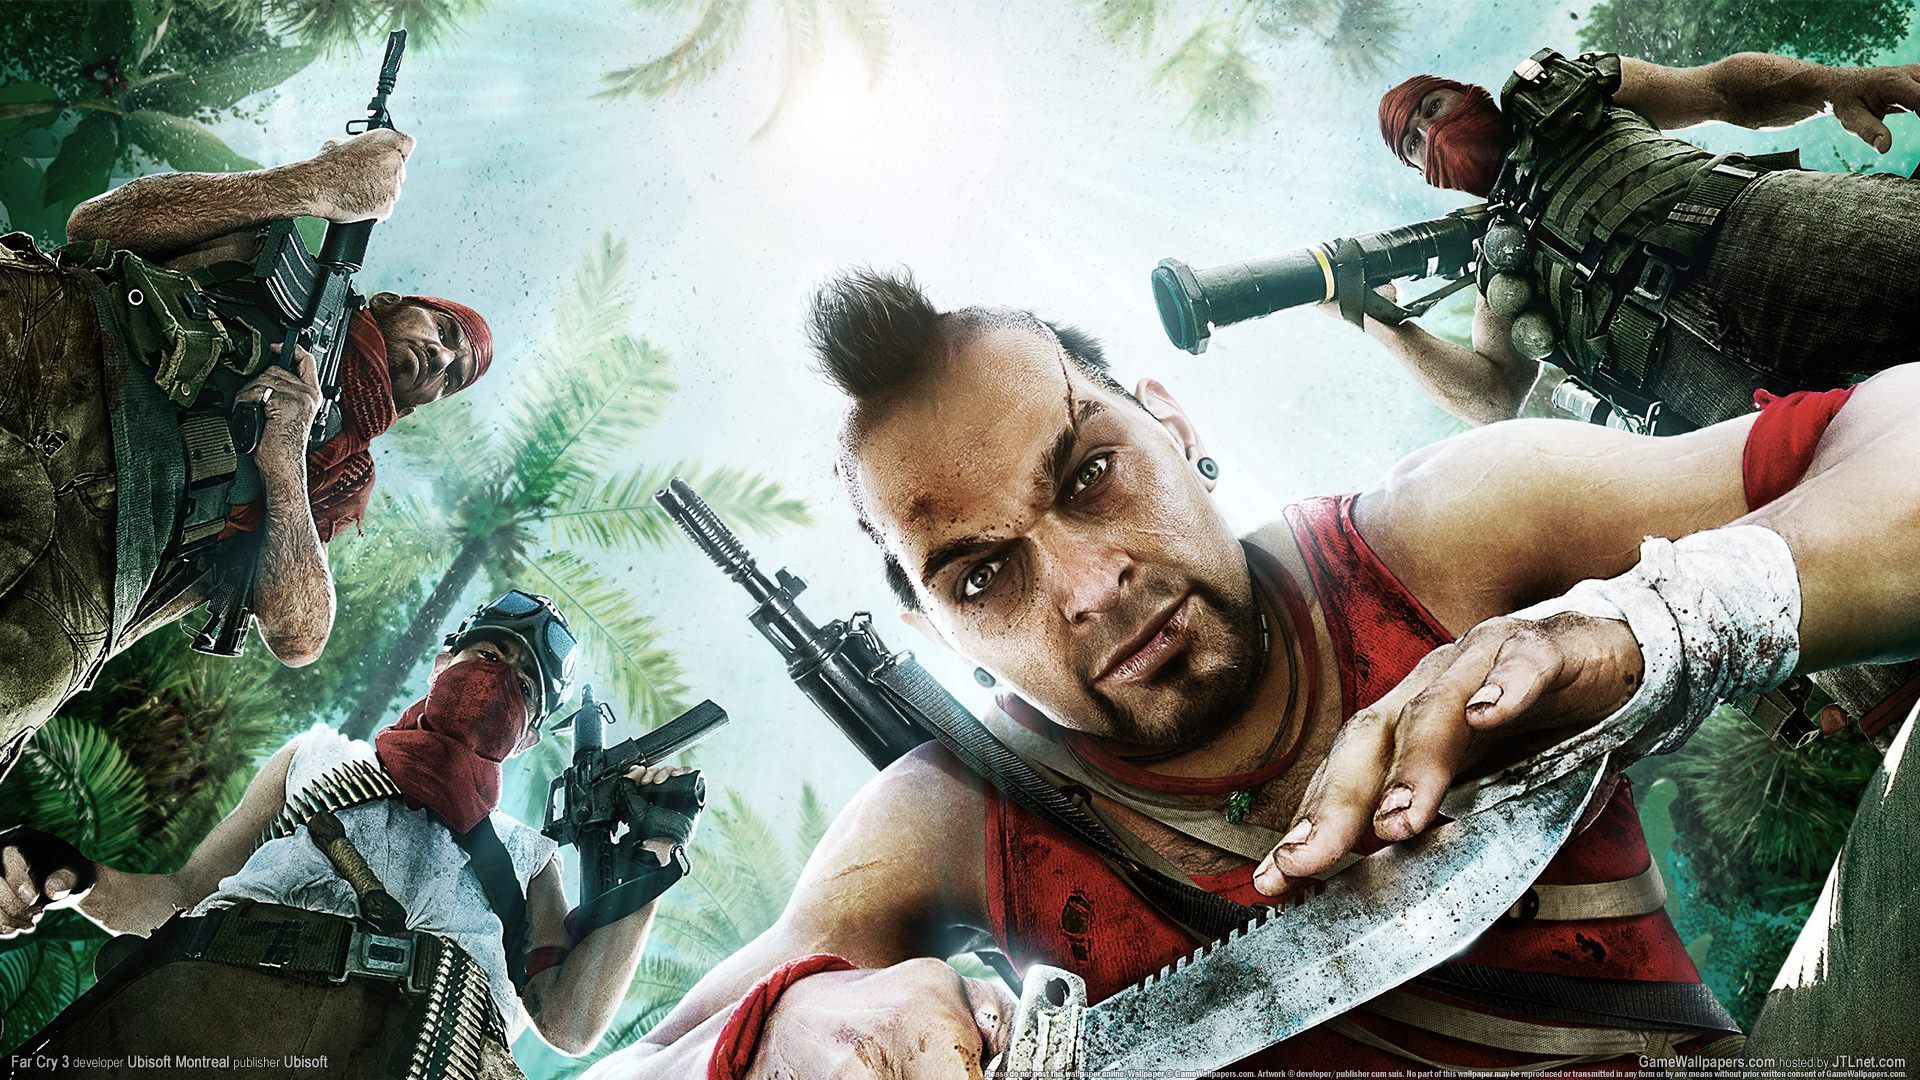 far-cry-4-gameplay-wallpaper-hi-resolution-image-62859 (1920